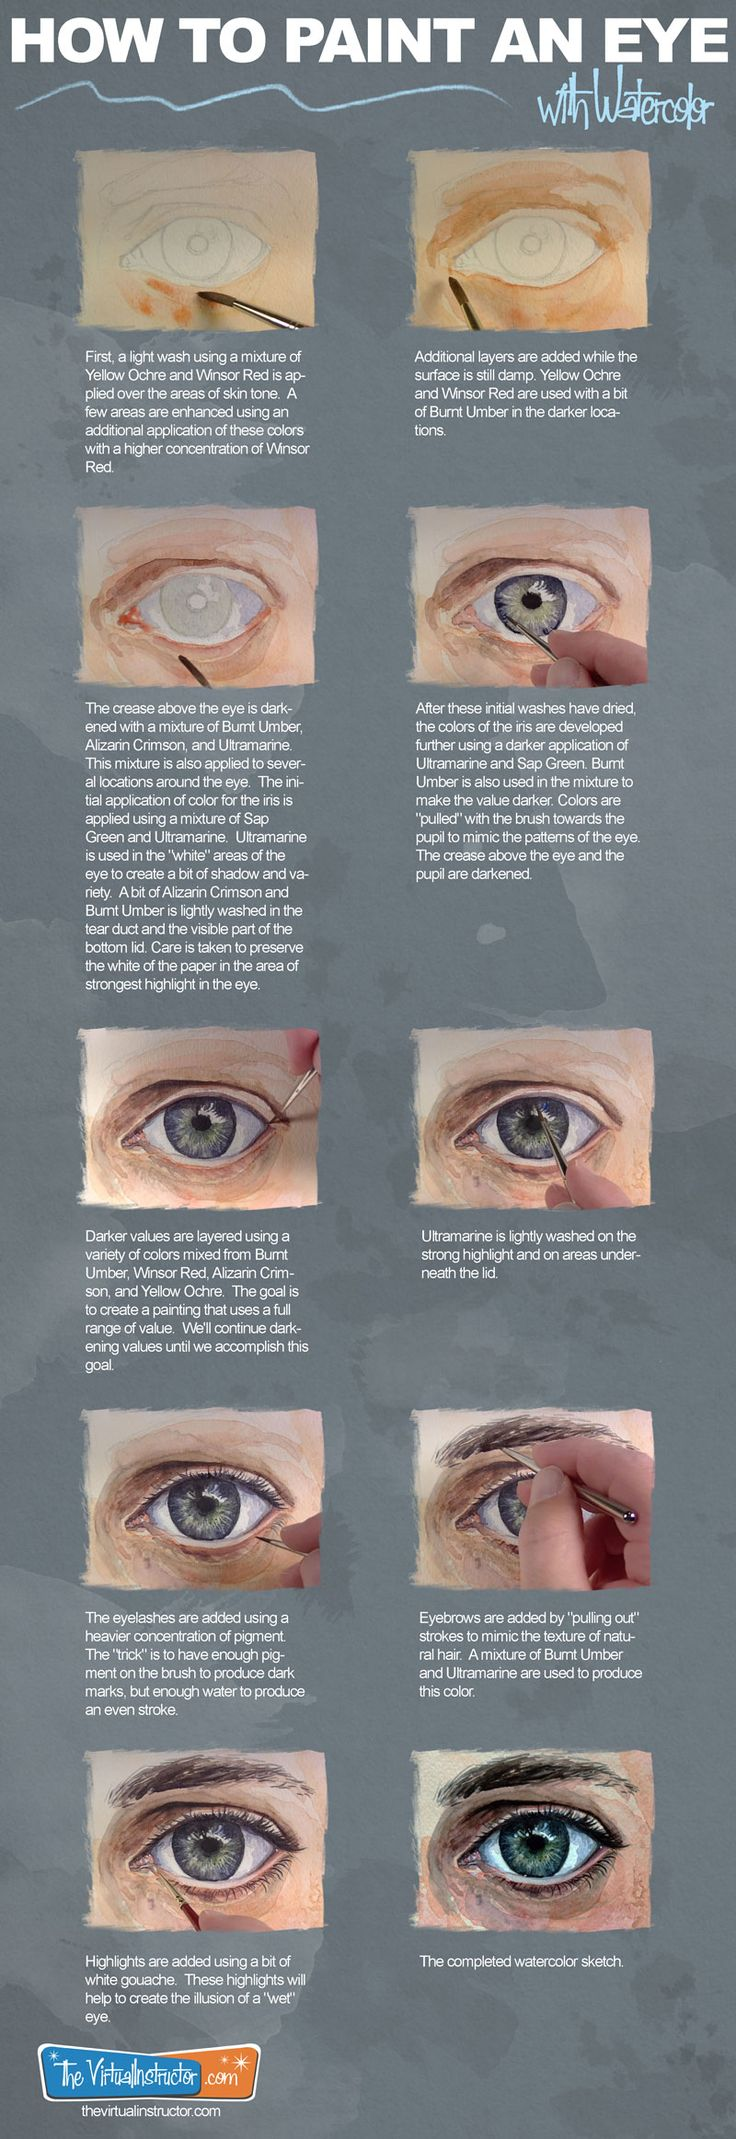 How to Paint an Eye with Watercolor Infographic